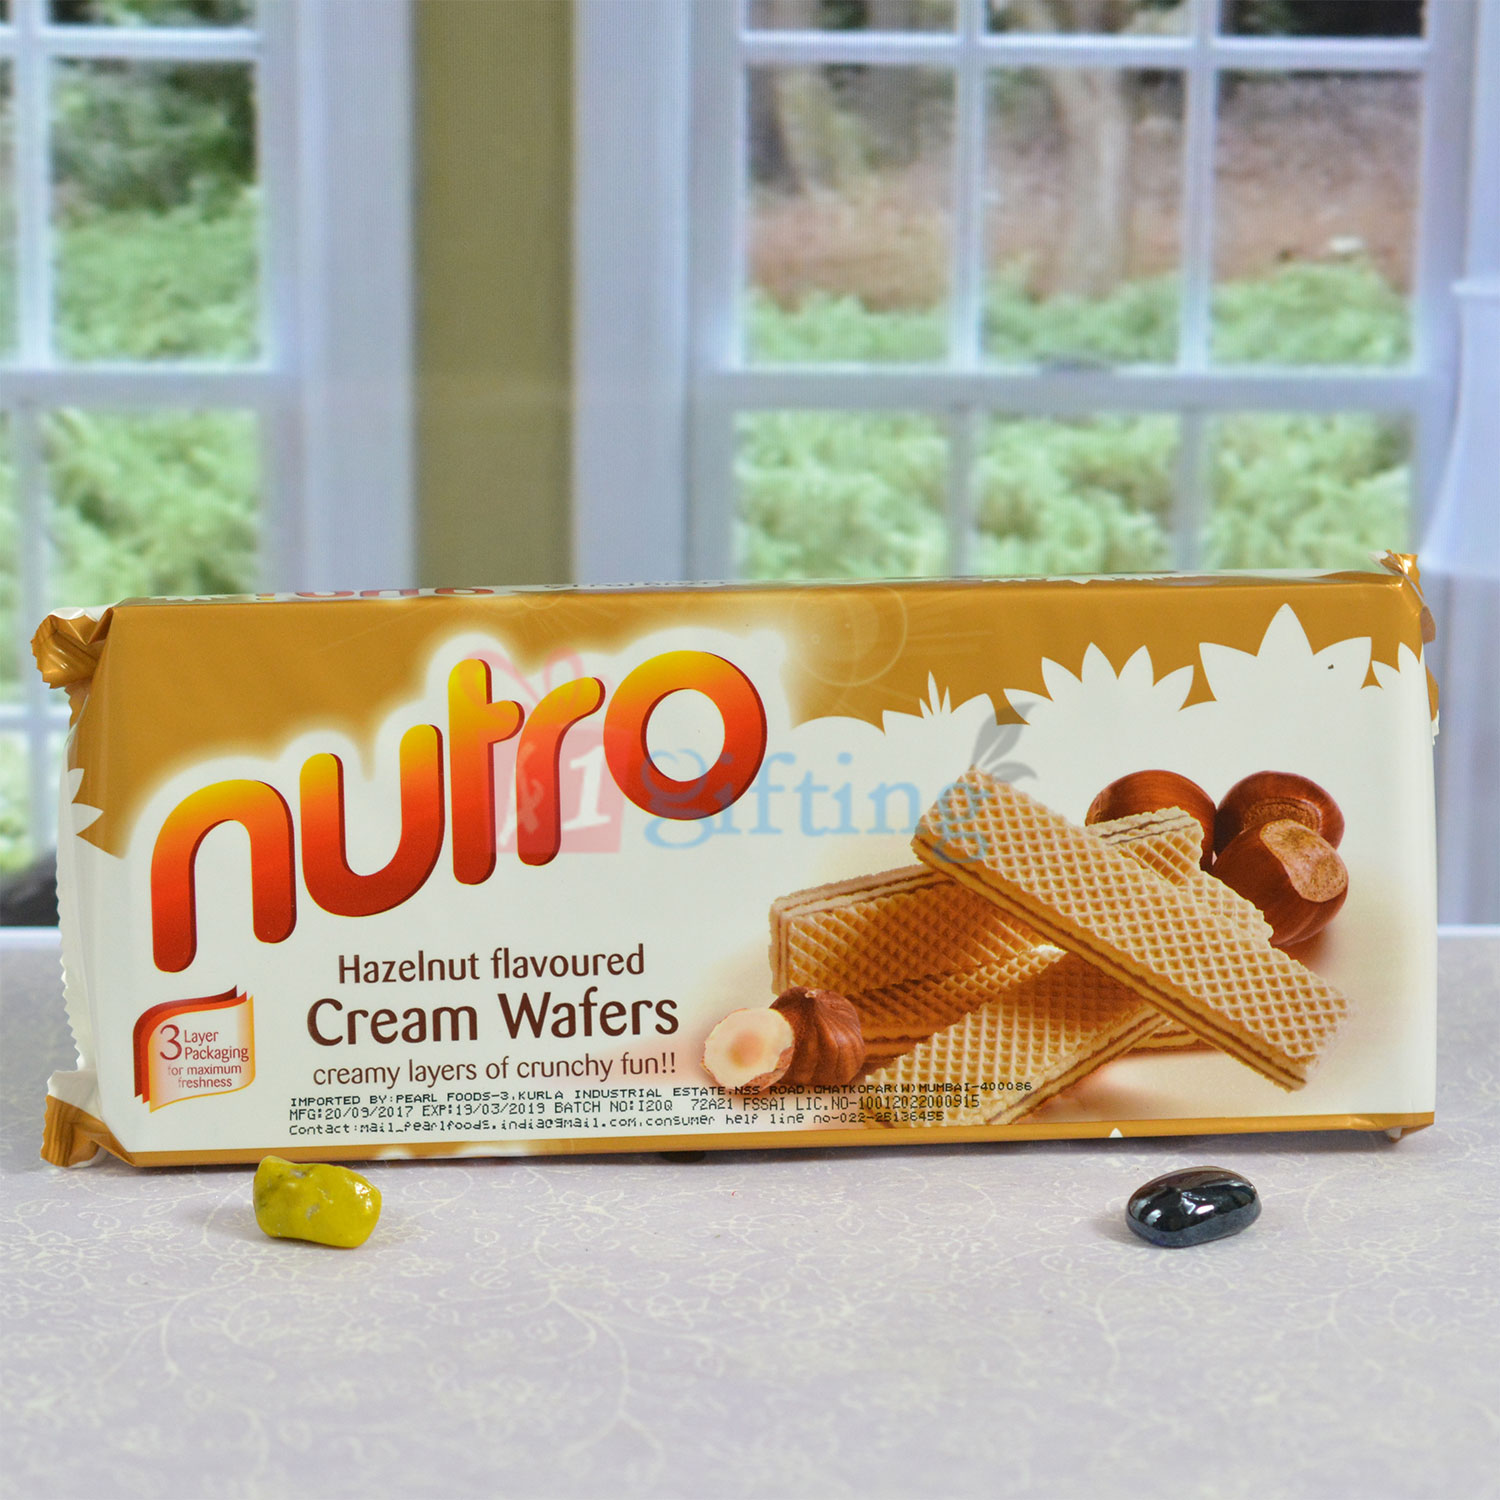 Nutro Cream Wafers Hazelnut Flavoured